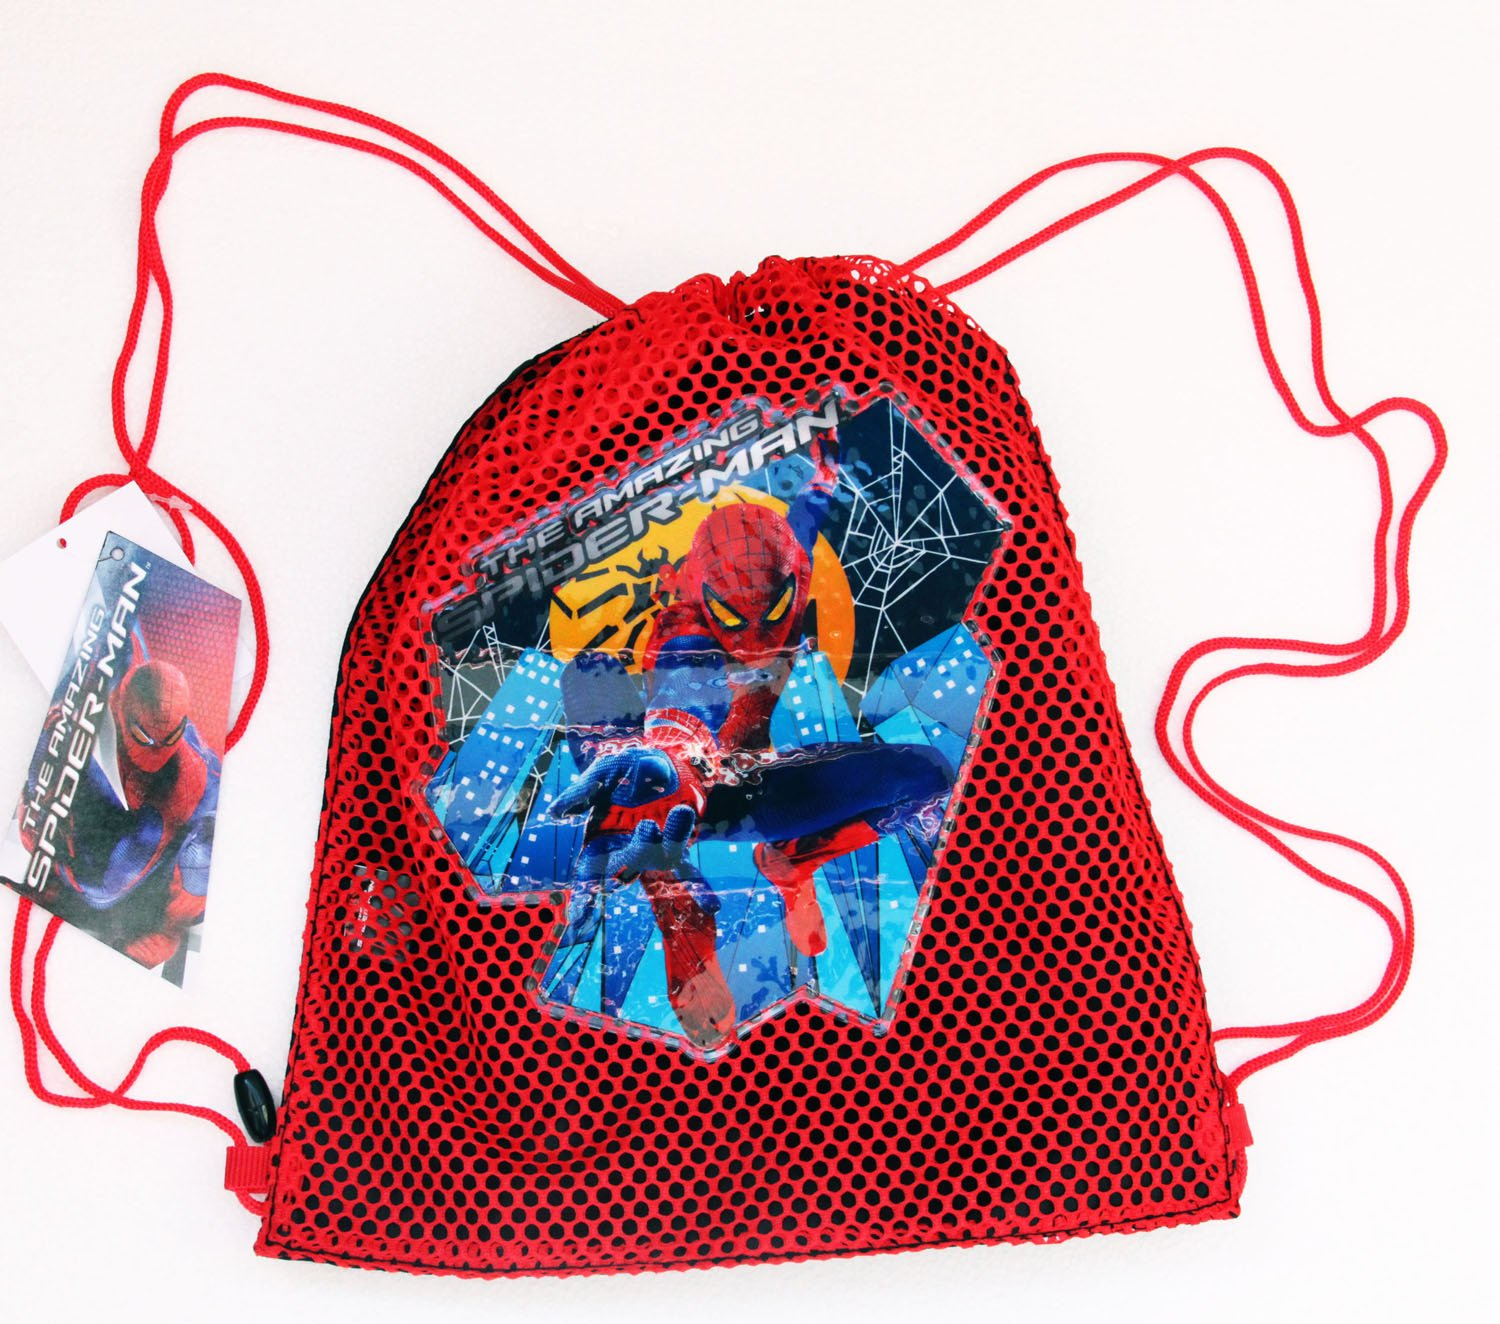 Amazon.com  Wholesale Lot 12 Pieces Marvel SPIDER-MAN Sling Bags Net Front  Birthday Party Favor - SOLD IN 12 PIECES  Toys   Games b06c394921440